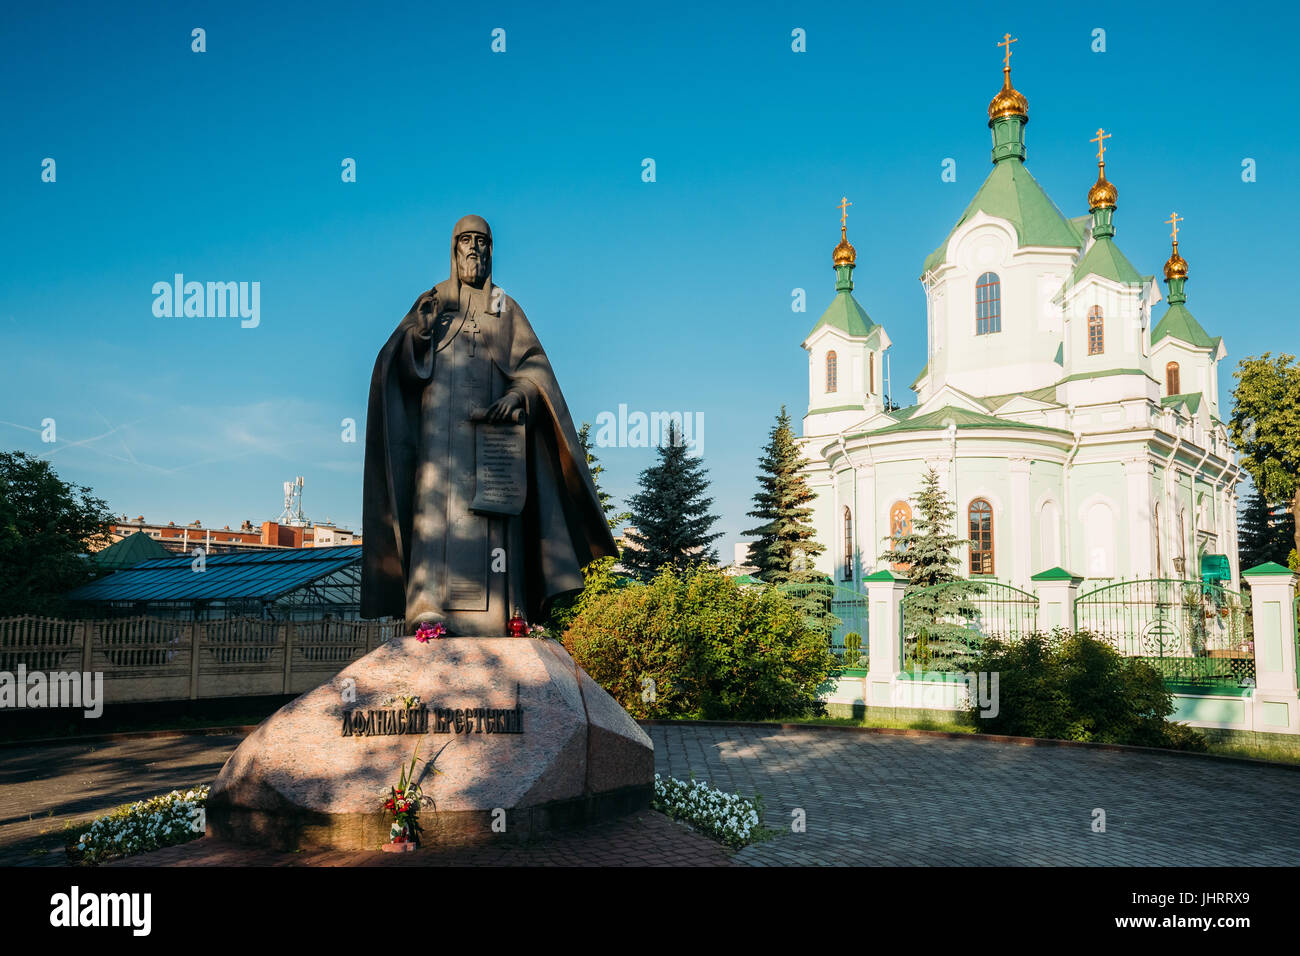 Brest, Belarus - June 6, 2017: Monument Near Simeon's Stylites Cathedral Church To Holy Hieromartyr Athanasius - Stock Image